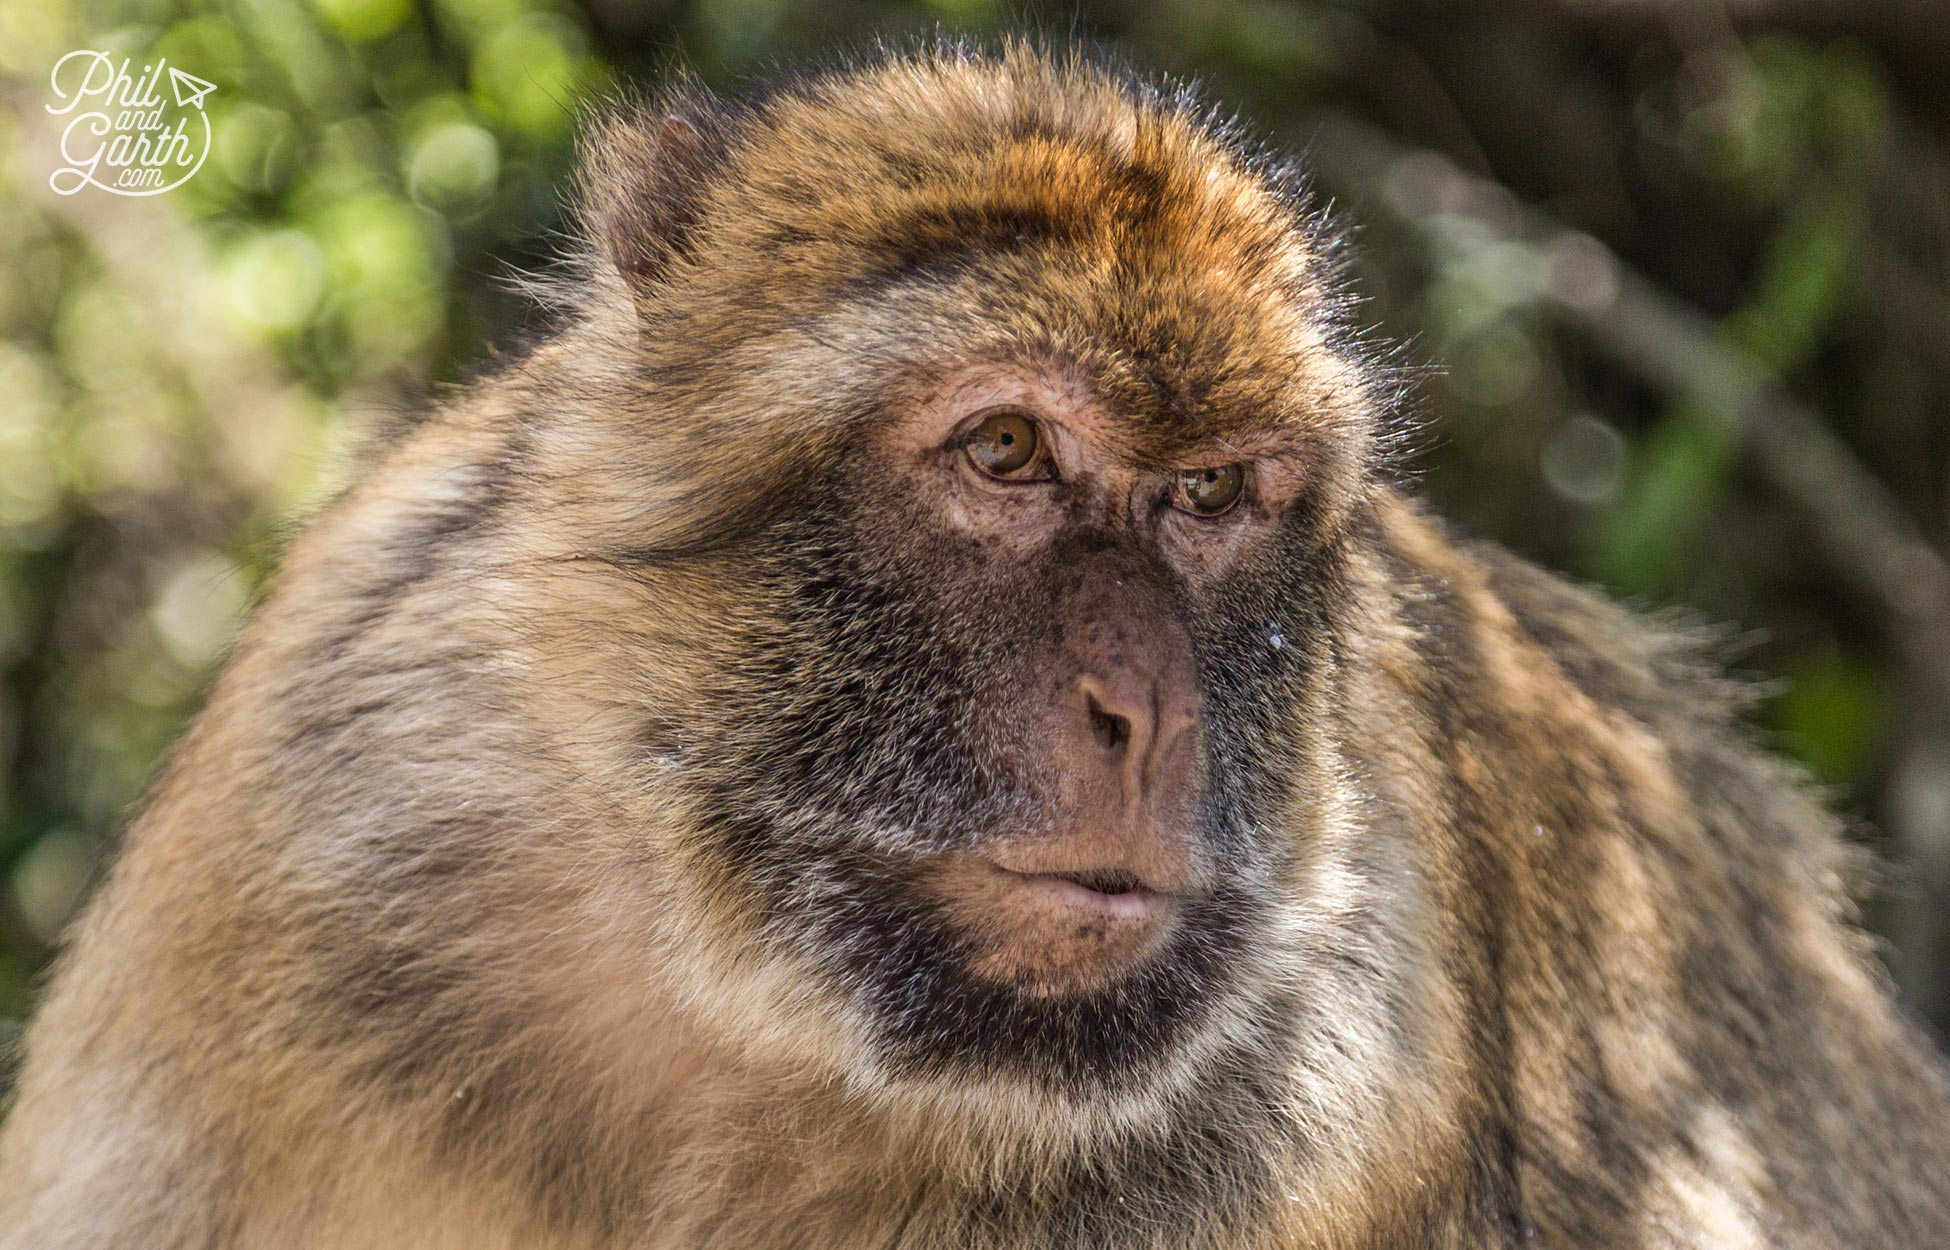 The cute looking barbary macaques